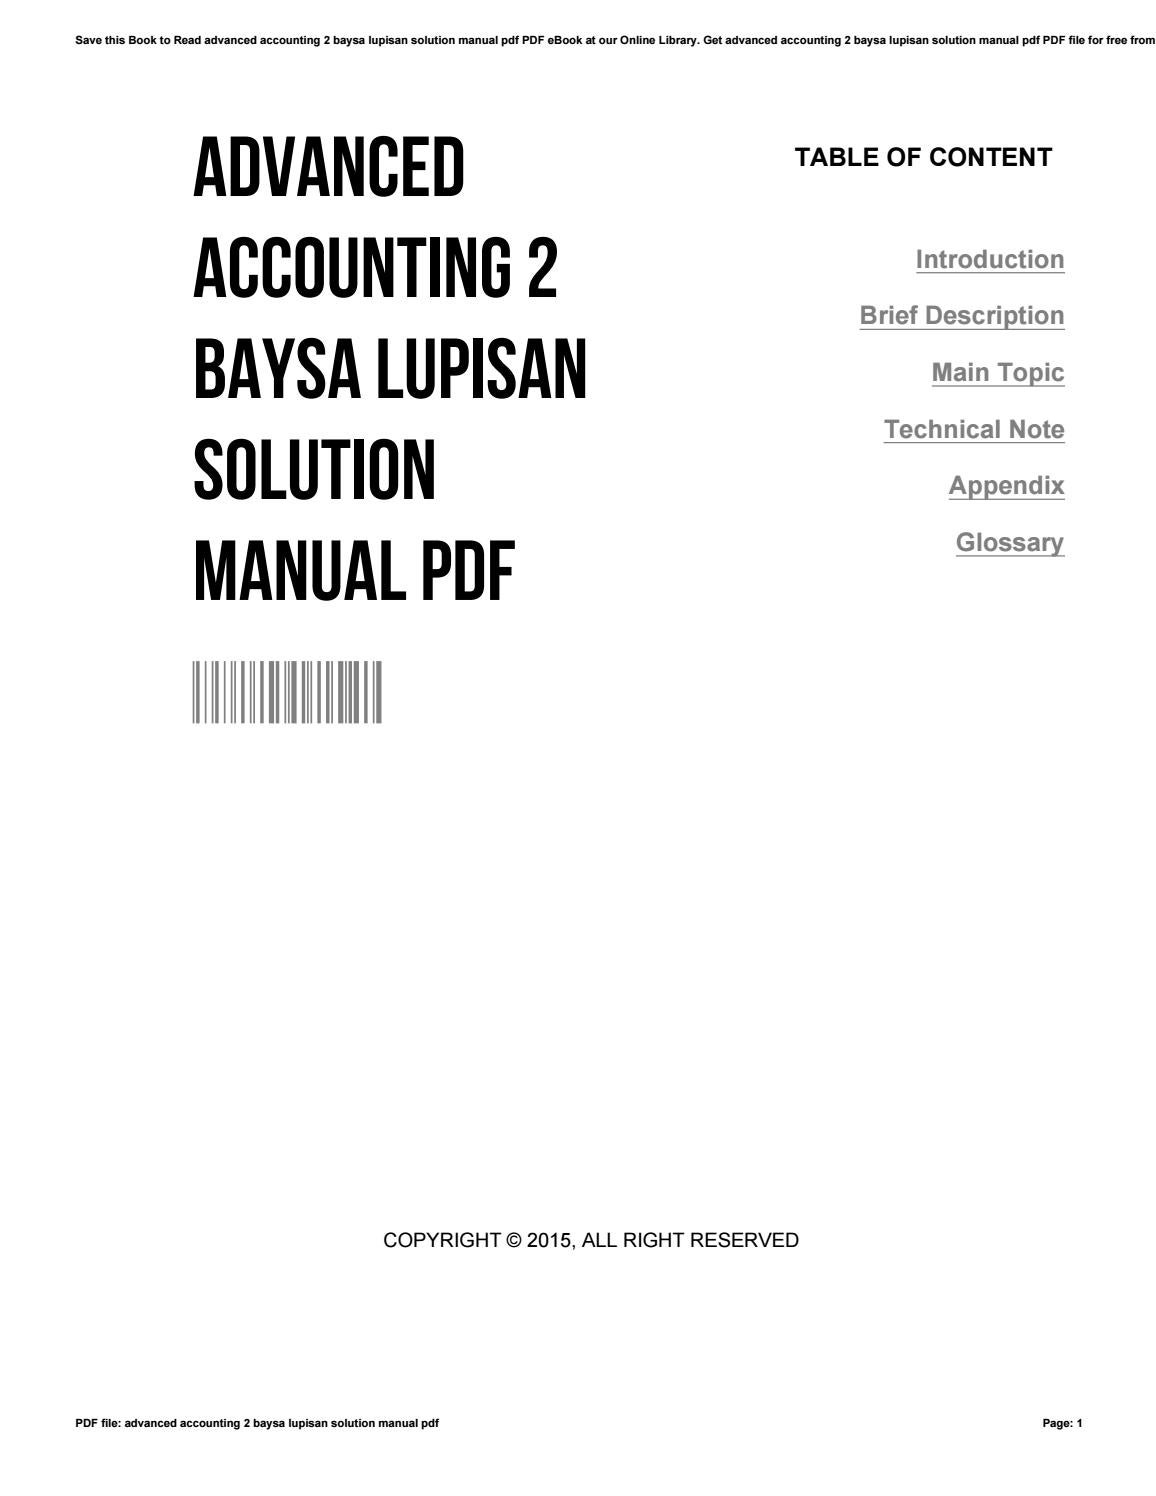 Advanced accounting solutions chapter 15 pdf hoyle advanced consolidation of download solutions 8 welcoming the com dedicated offering dynamic inclusive conferences abreast latest advances it profession fandeluxe Image collections